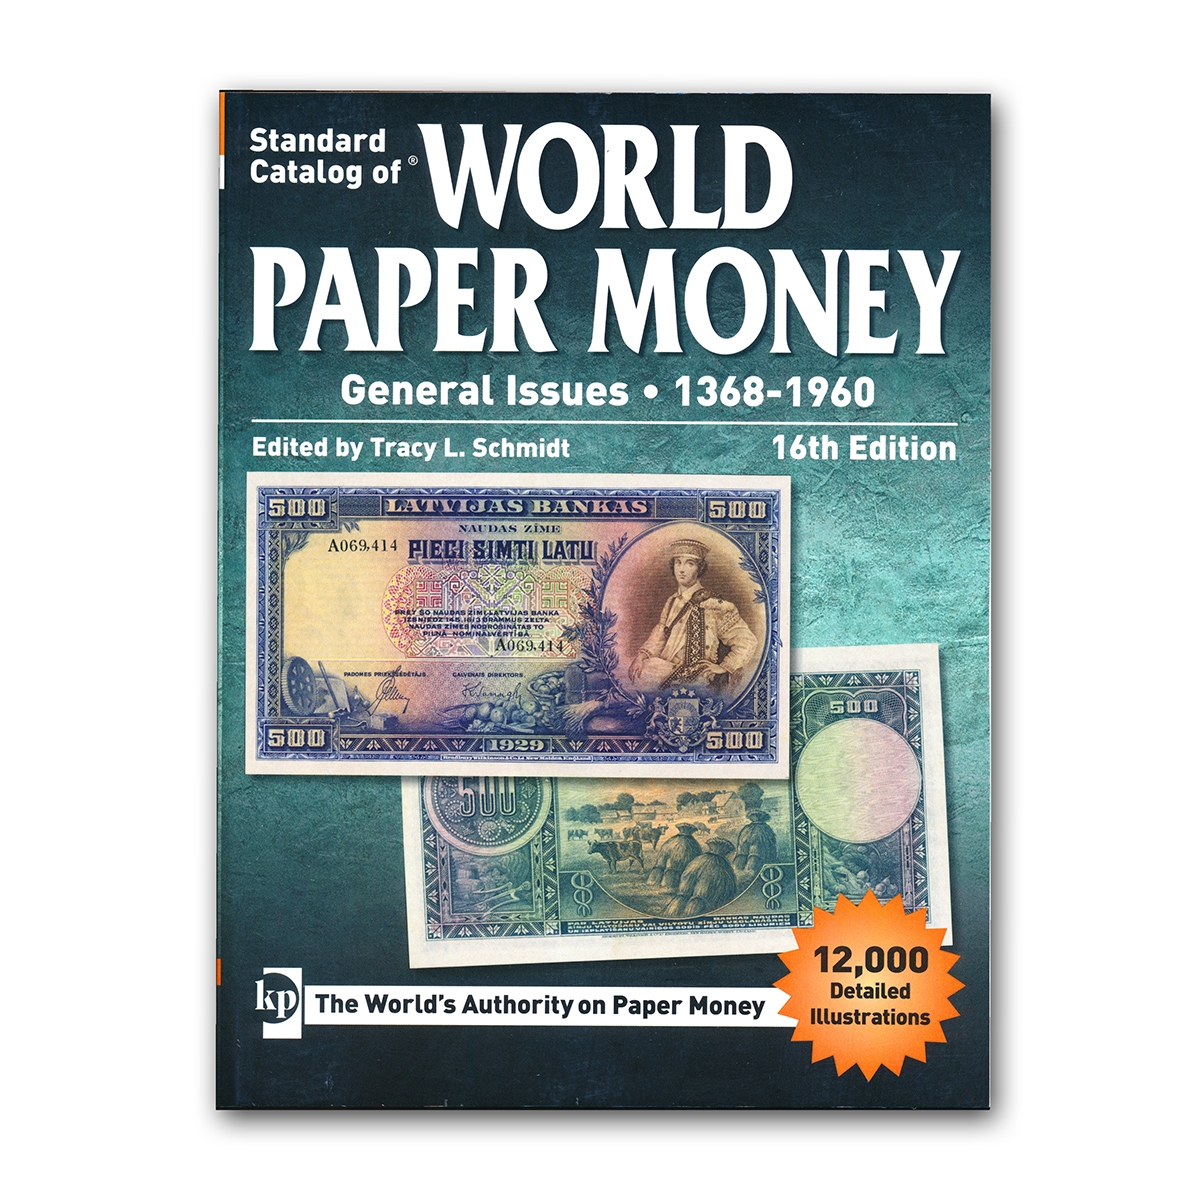 World Paper Money General Issues | 1368-1960, 16th Ed